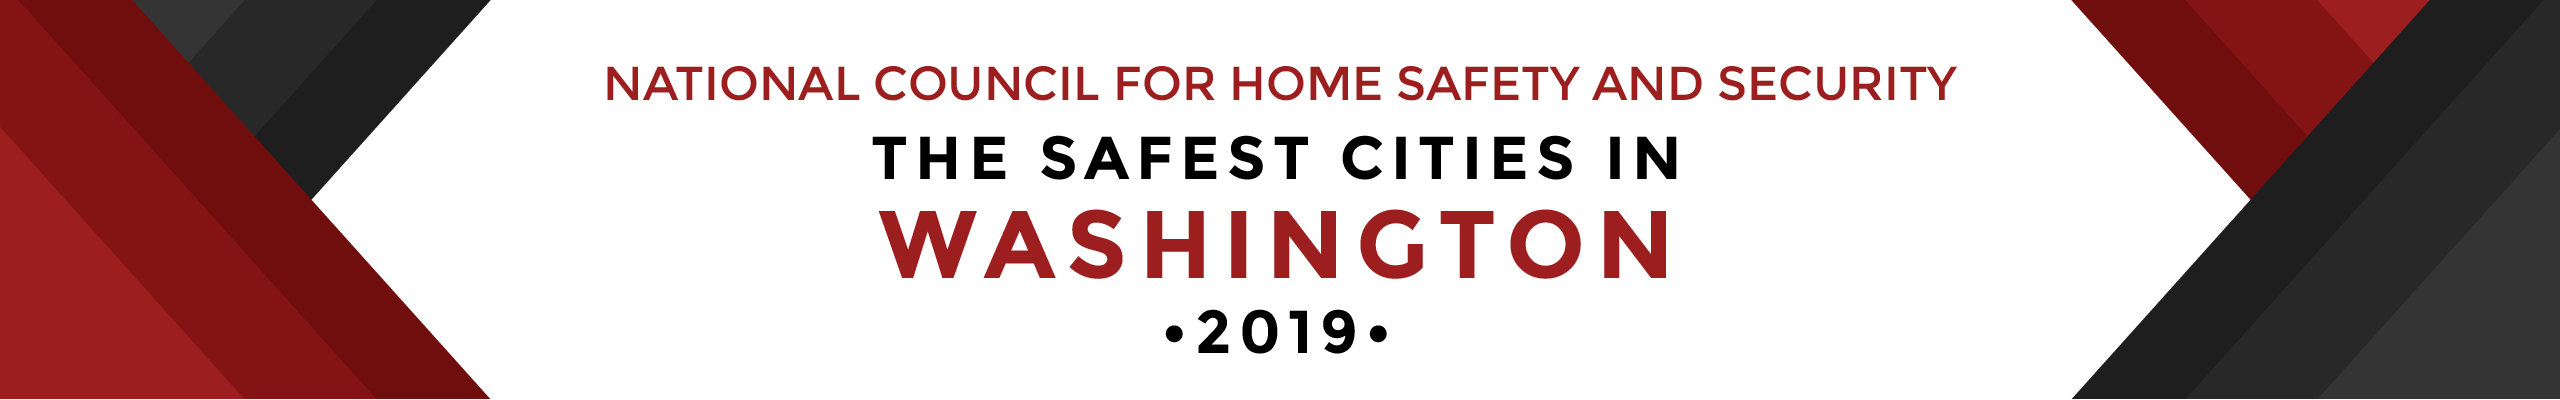 Safest Cities Washington - header